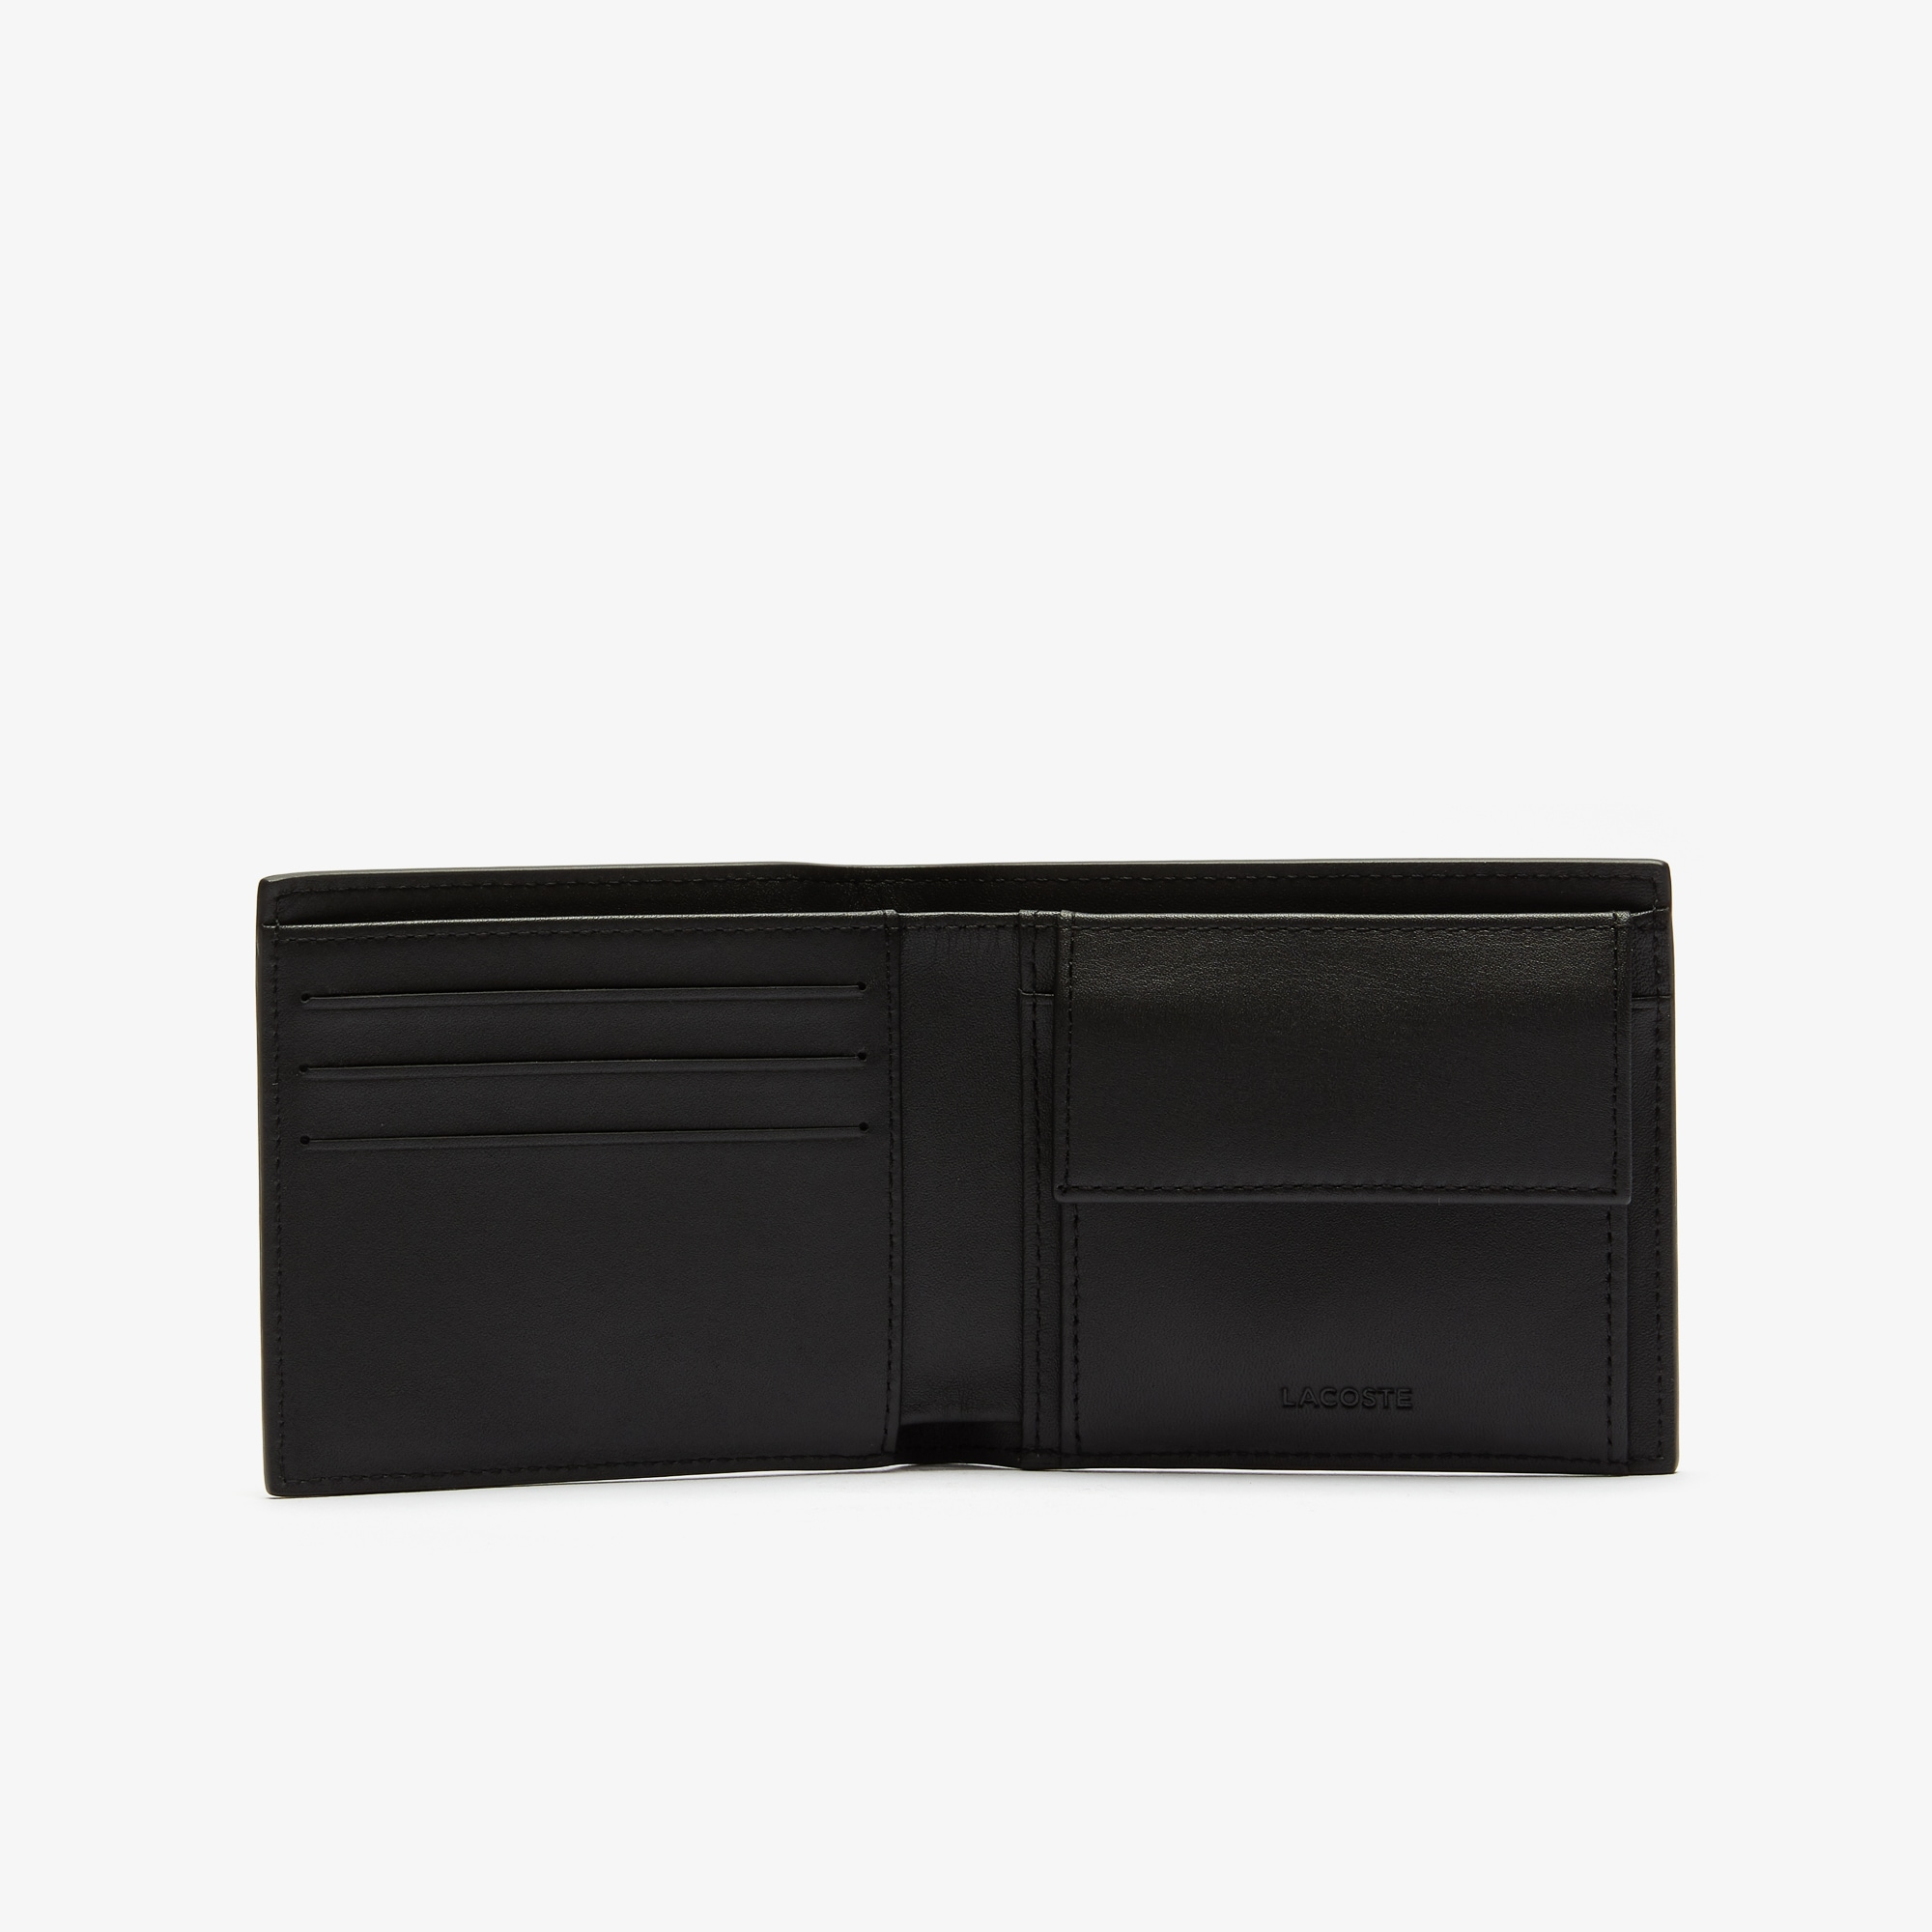 Men's Bi-fold Leather Wallet